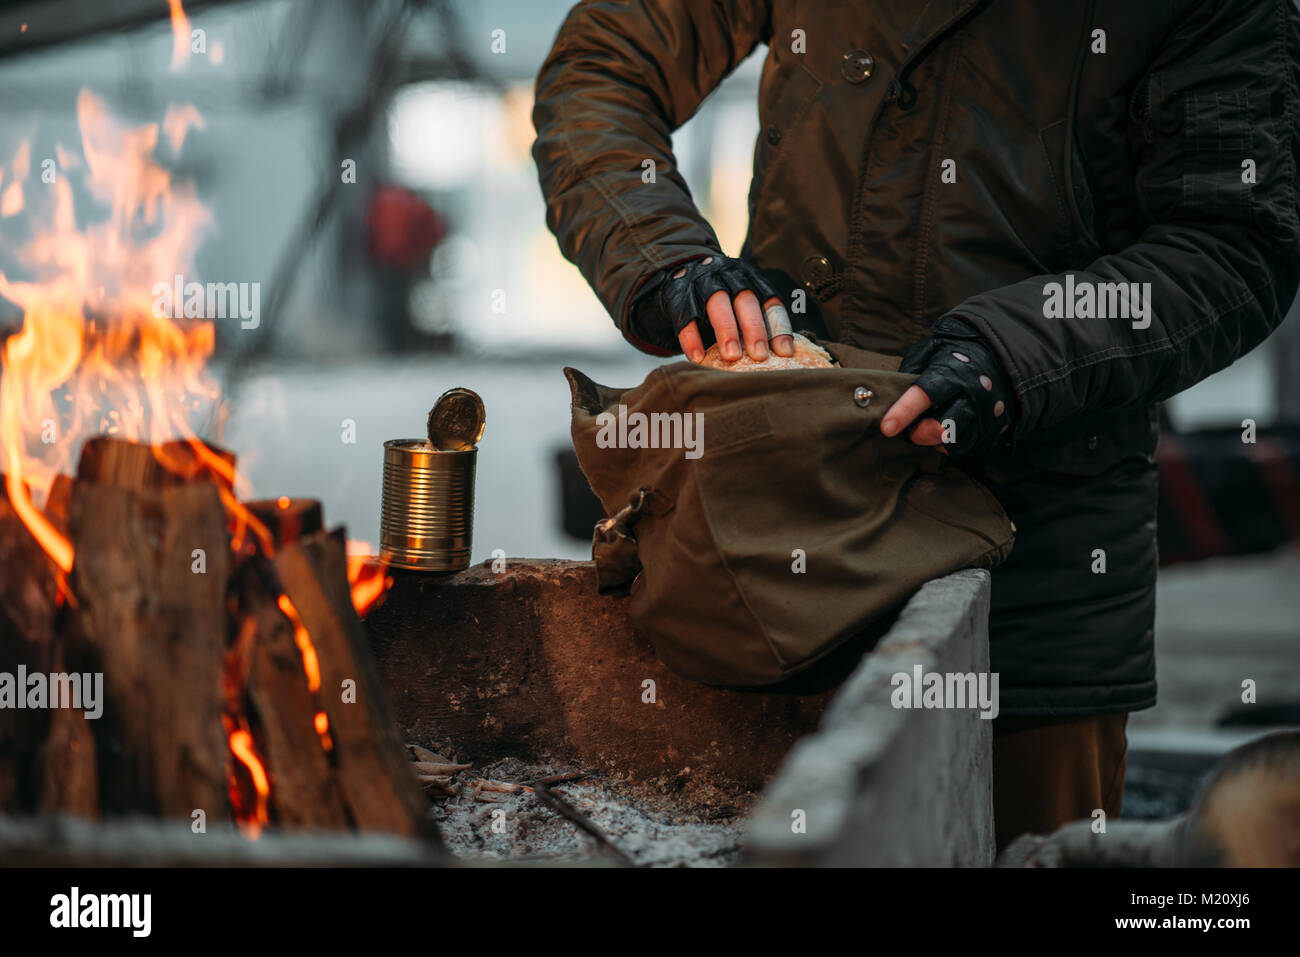 Stalker, male person warms his hands on fire. Post apocalyptic lifestyle with gas mask, doomsday, - Stock Image